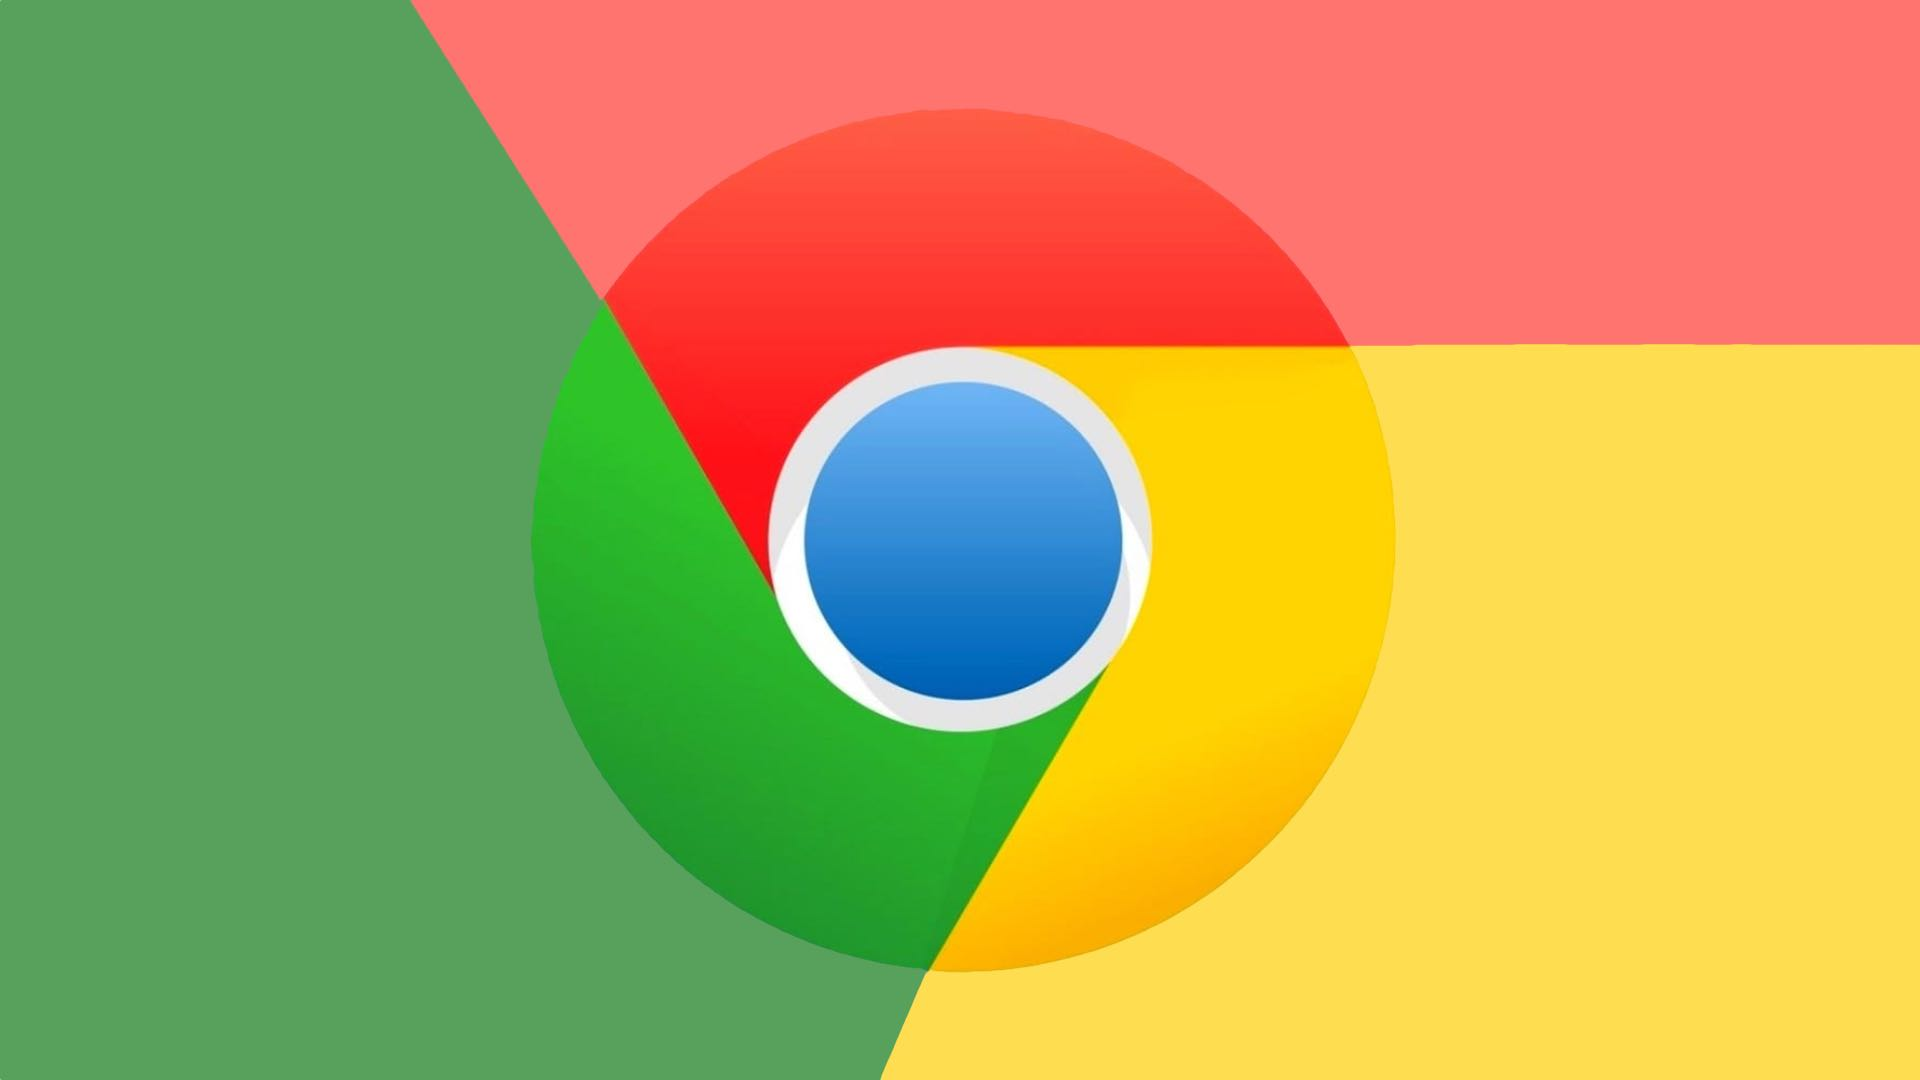 Chrome 86 / Google Chrome